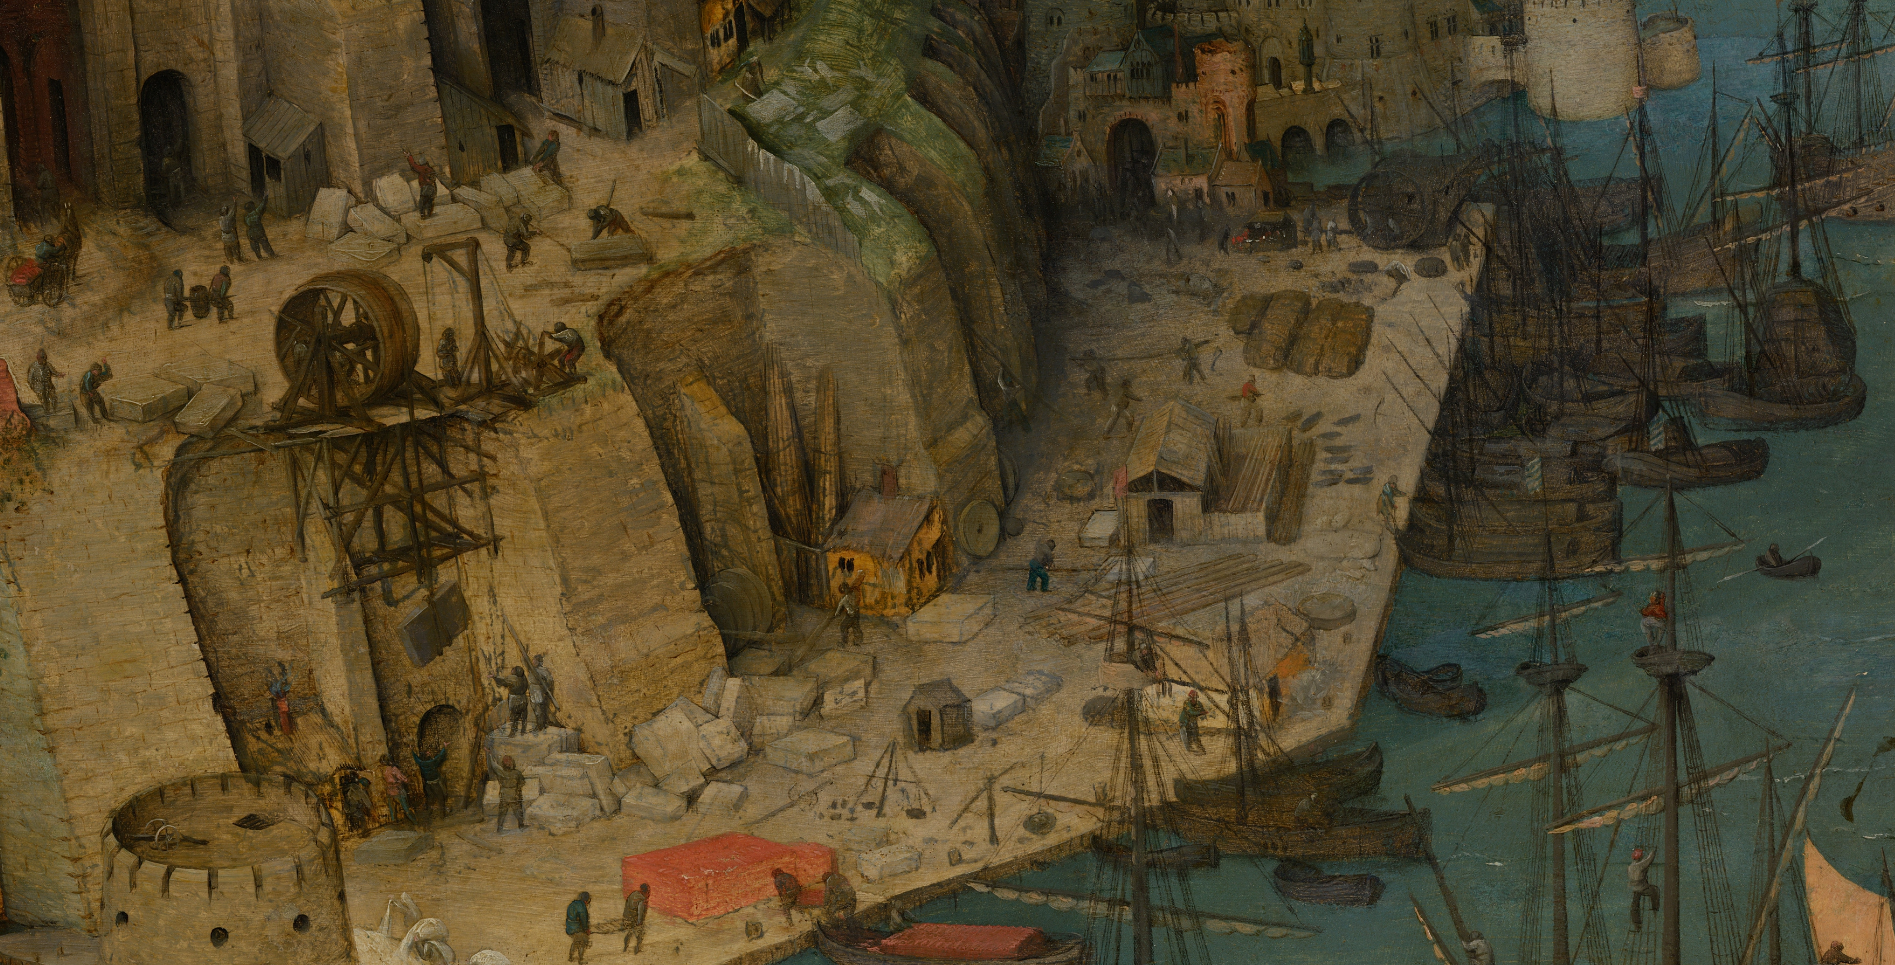 Pieter Bruegel, the Elder's painting The Tower of Babel in zoom view. View of ships bringing building materials. (Lower left)